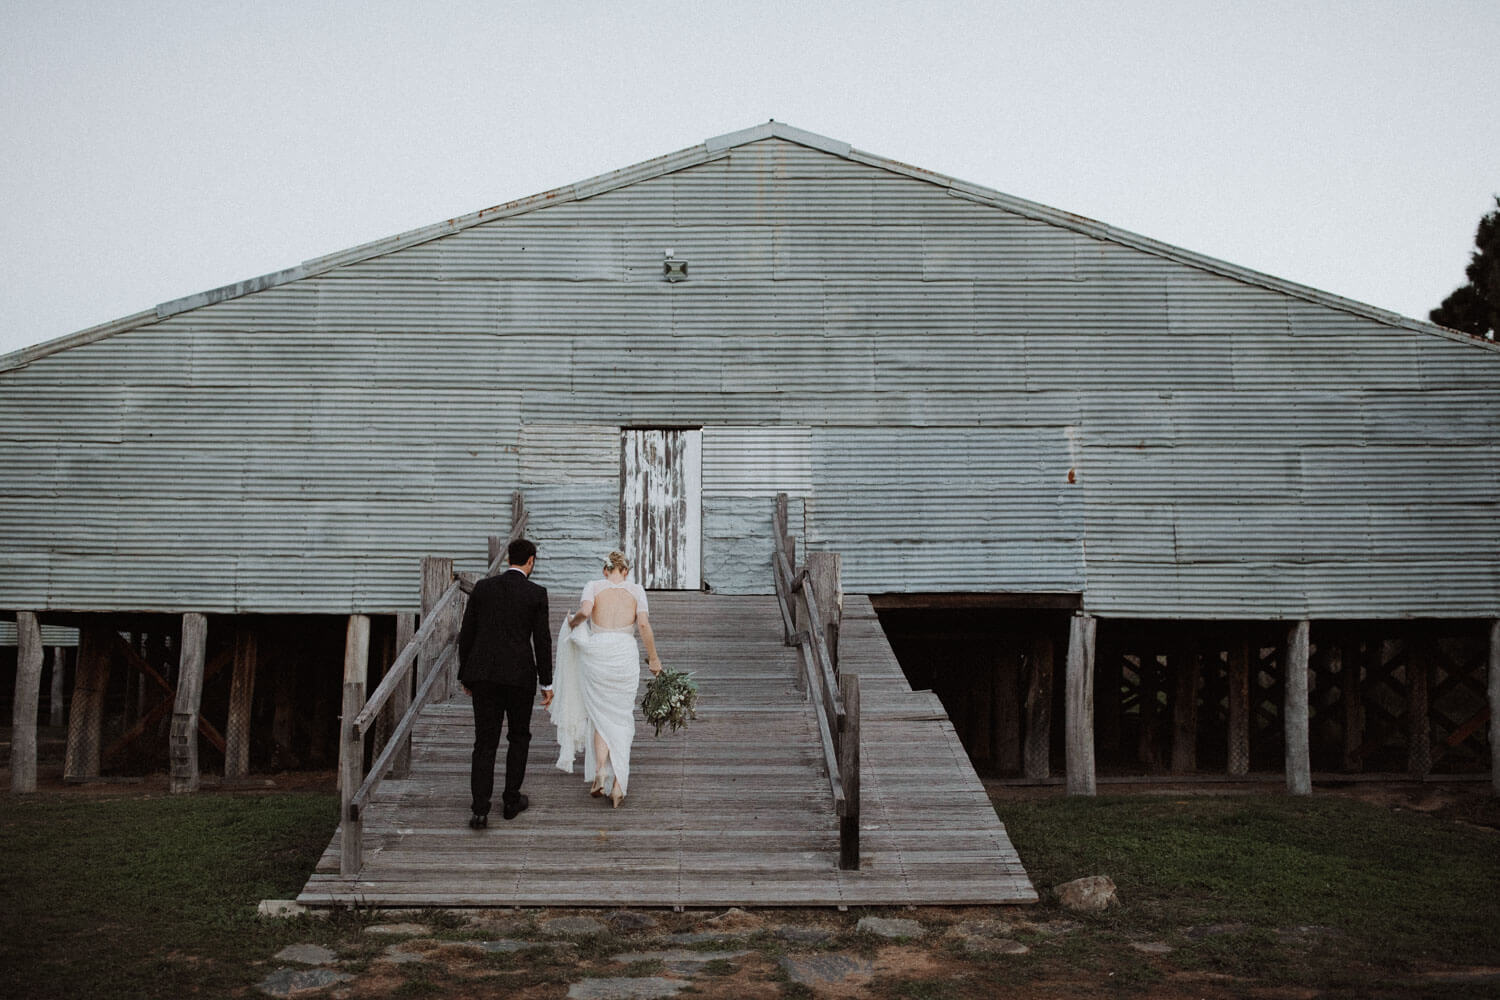 woolshed-wedding-australian-wedding-photographer_133(1991).jpg